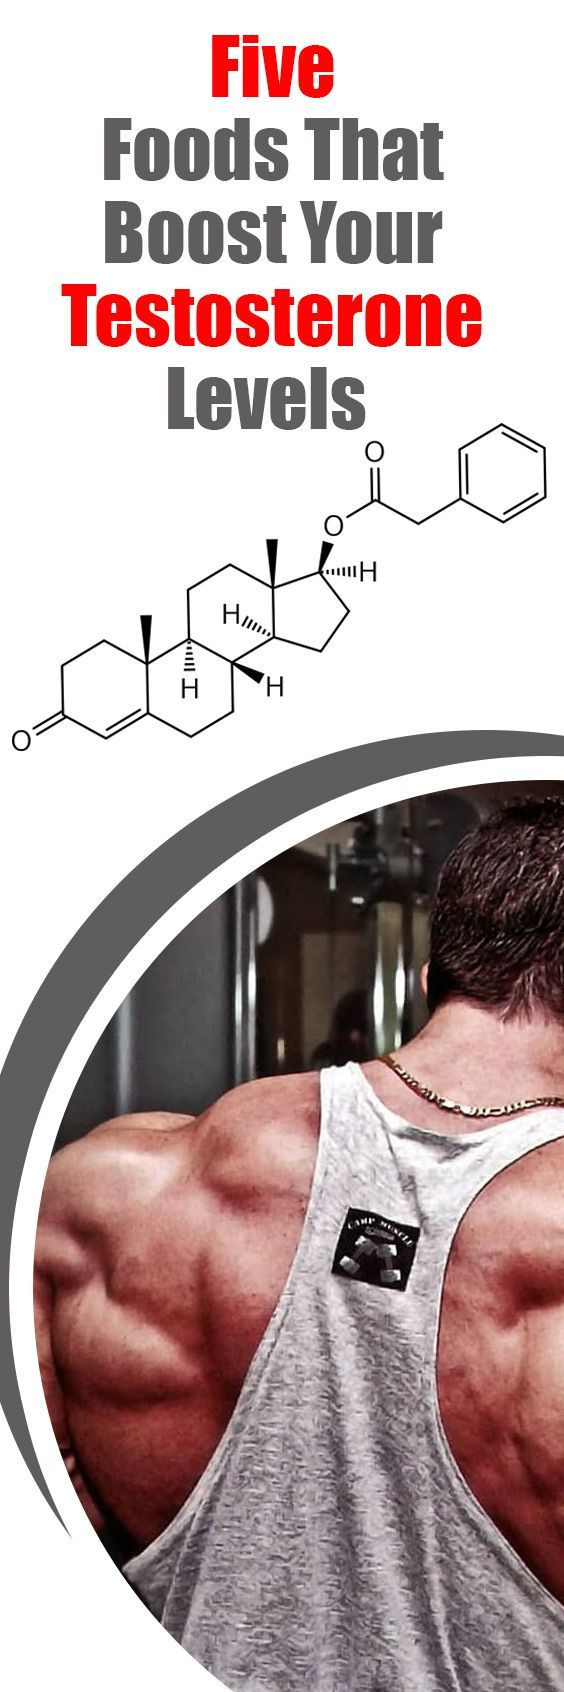 Five Foods That Boost Your Testosterone Levels